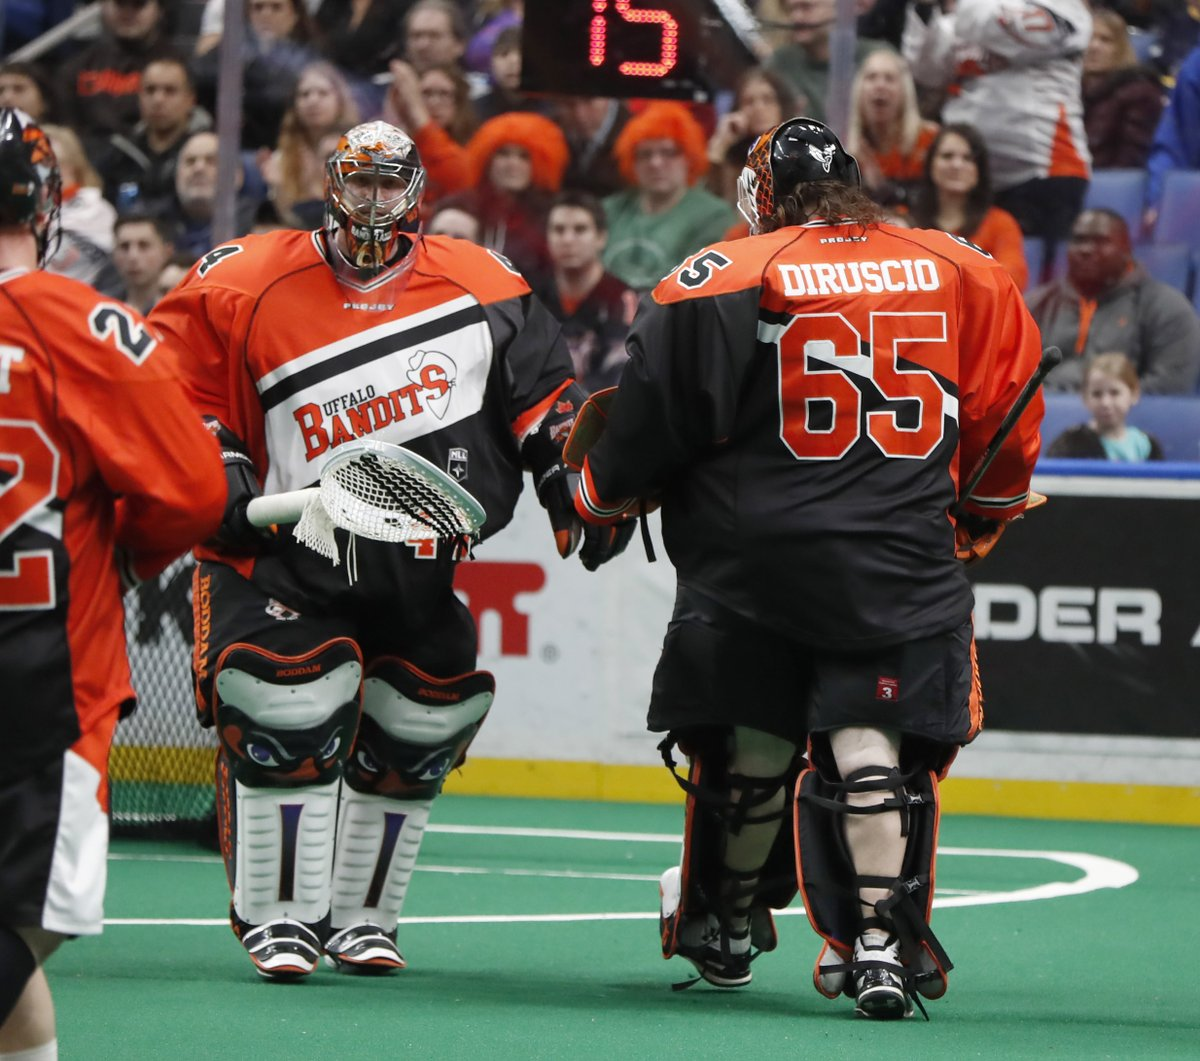 Time for a new goalie - Dave DiRuscio replaces Anthony Cosmo. (Photo by Harry Scull Jr. / Buffalo News)